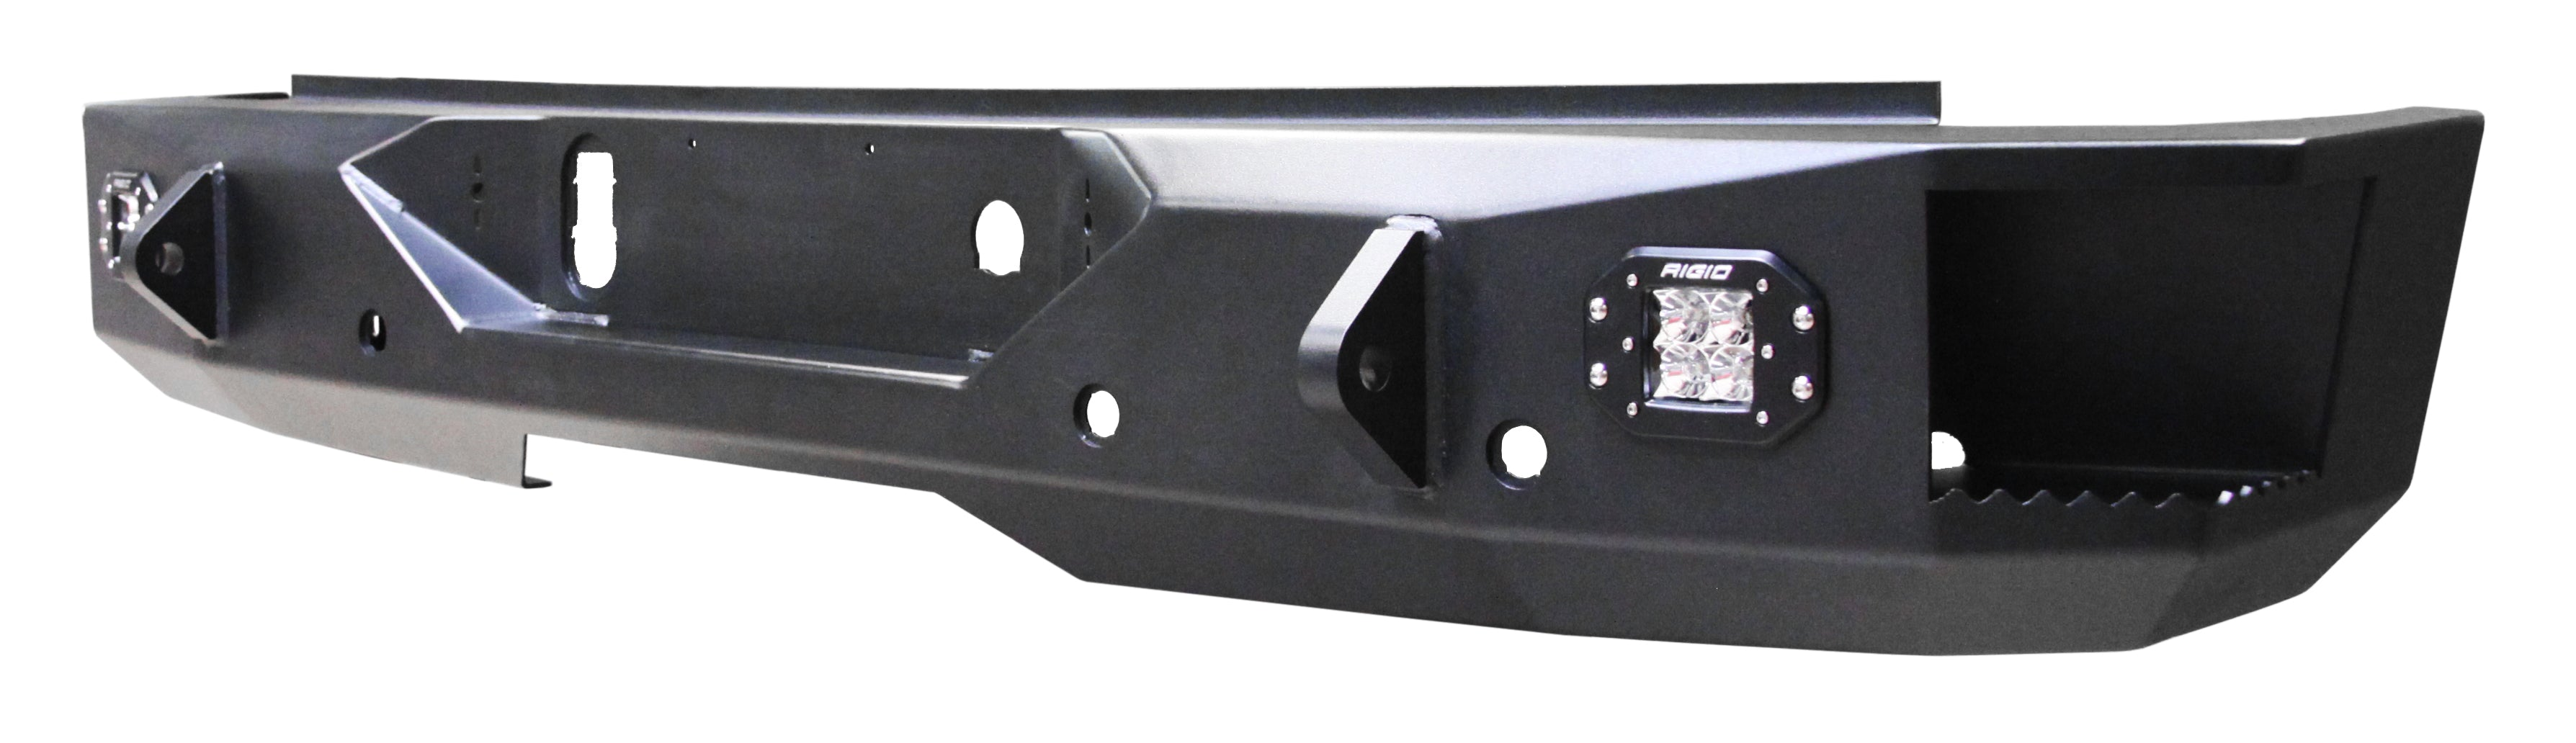 GMC - 2500/3500 (2015-2018) Rear Bumper